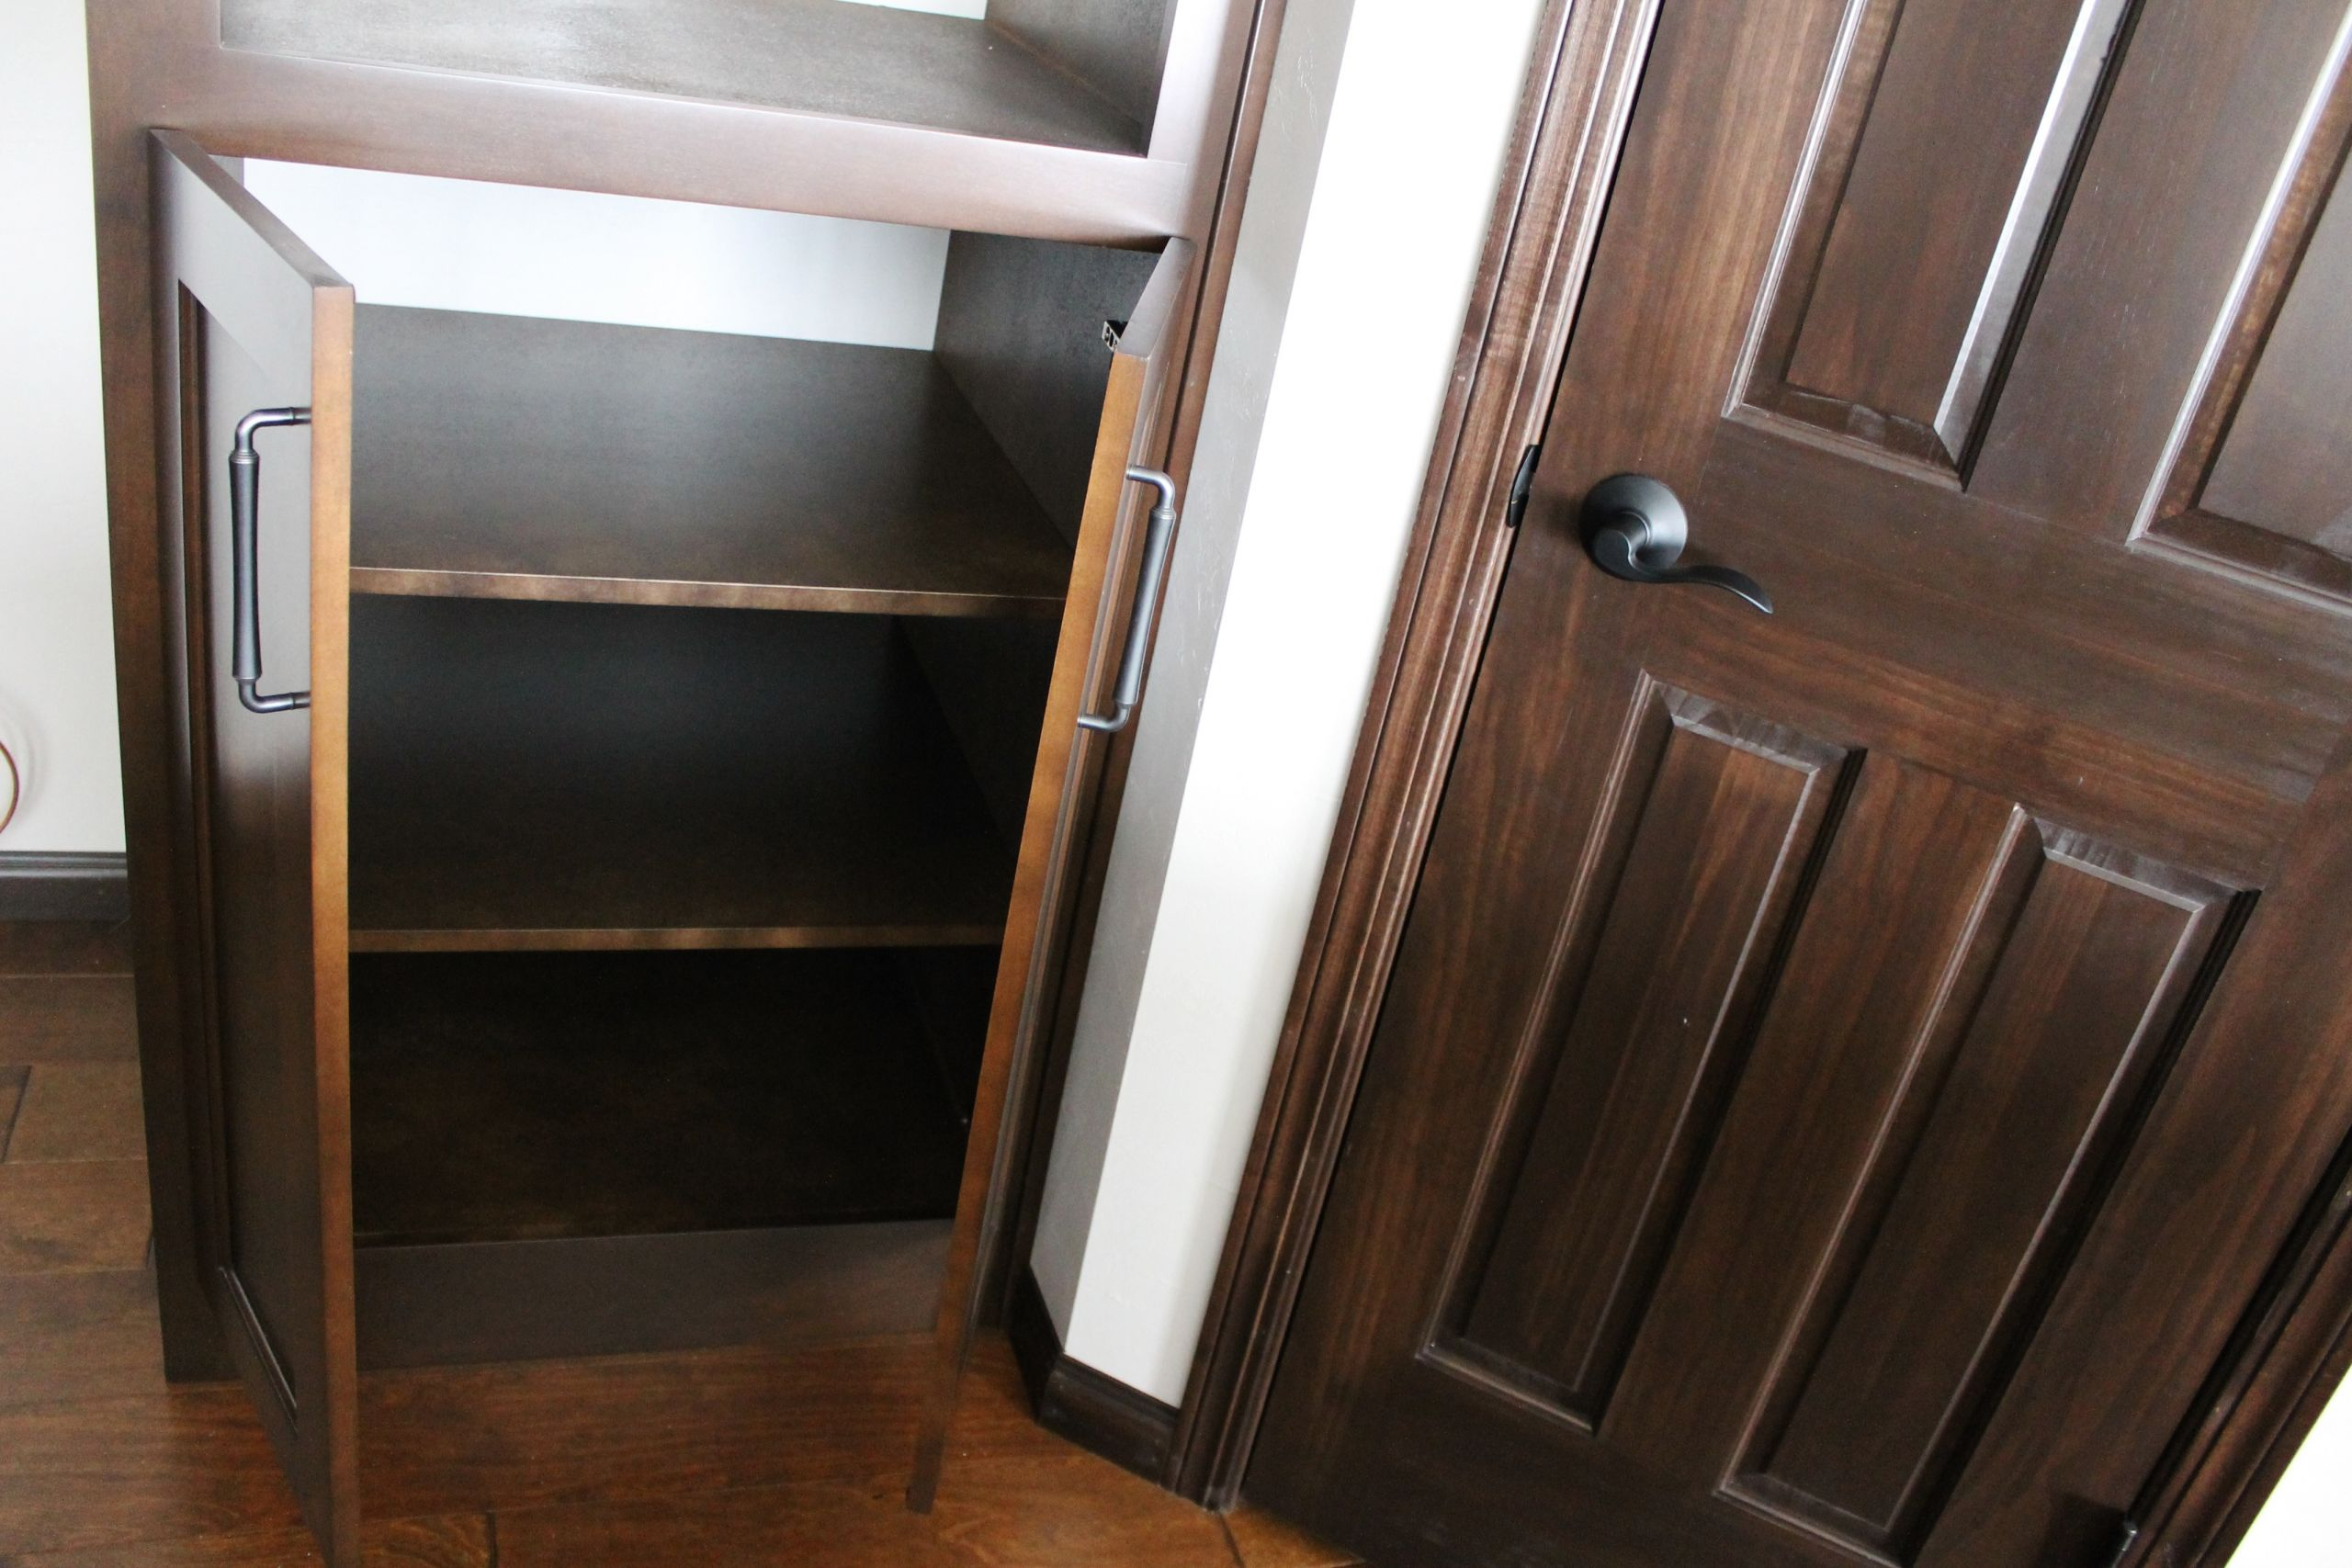 Extra Storage Cabinet For Kitchen  The Extra Kitchen Storage in this home May Surprise You